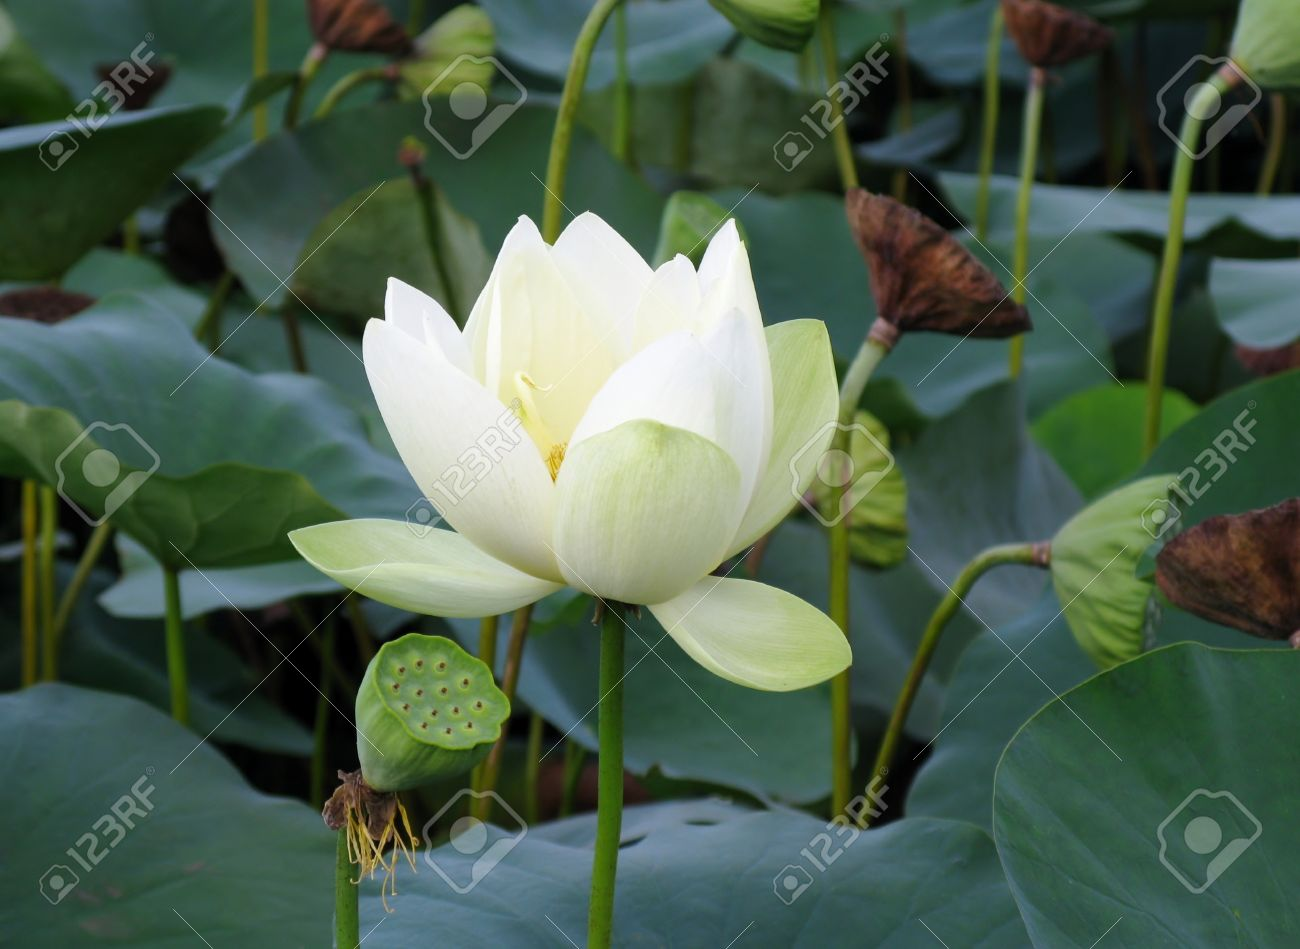 White Lotus Flower And Seedpods Stock Photo Picture And Royalty